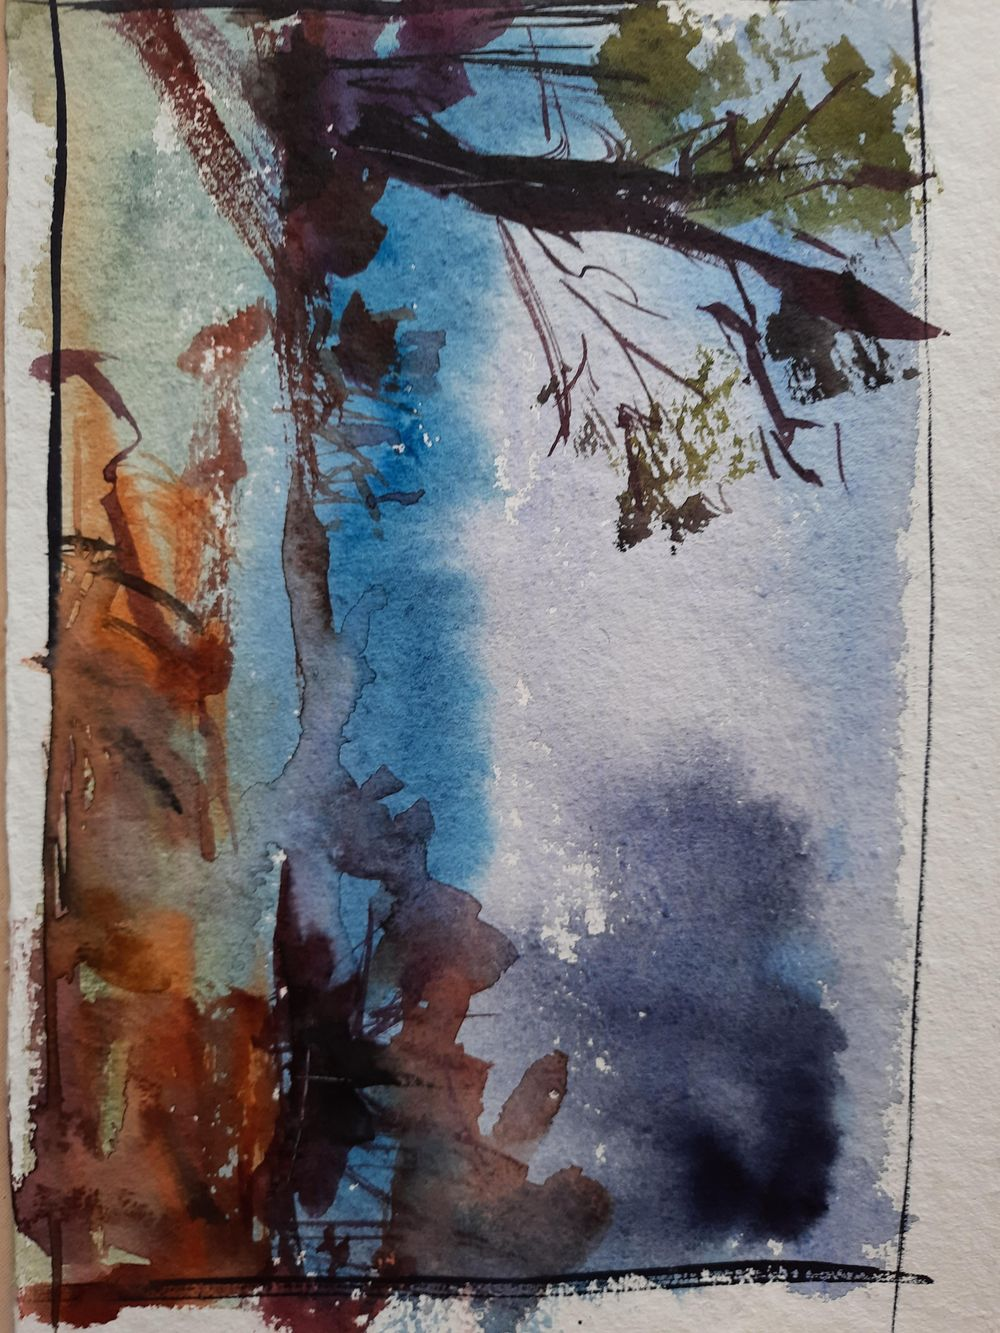 Watercolor workout - image 16 - student project